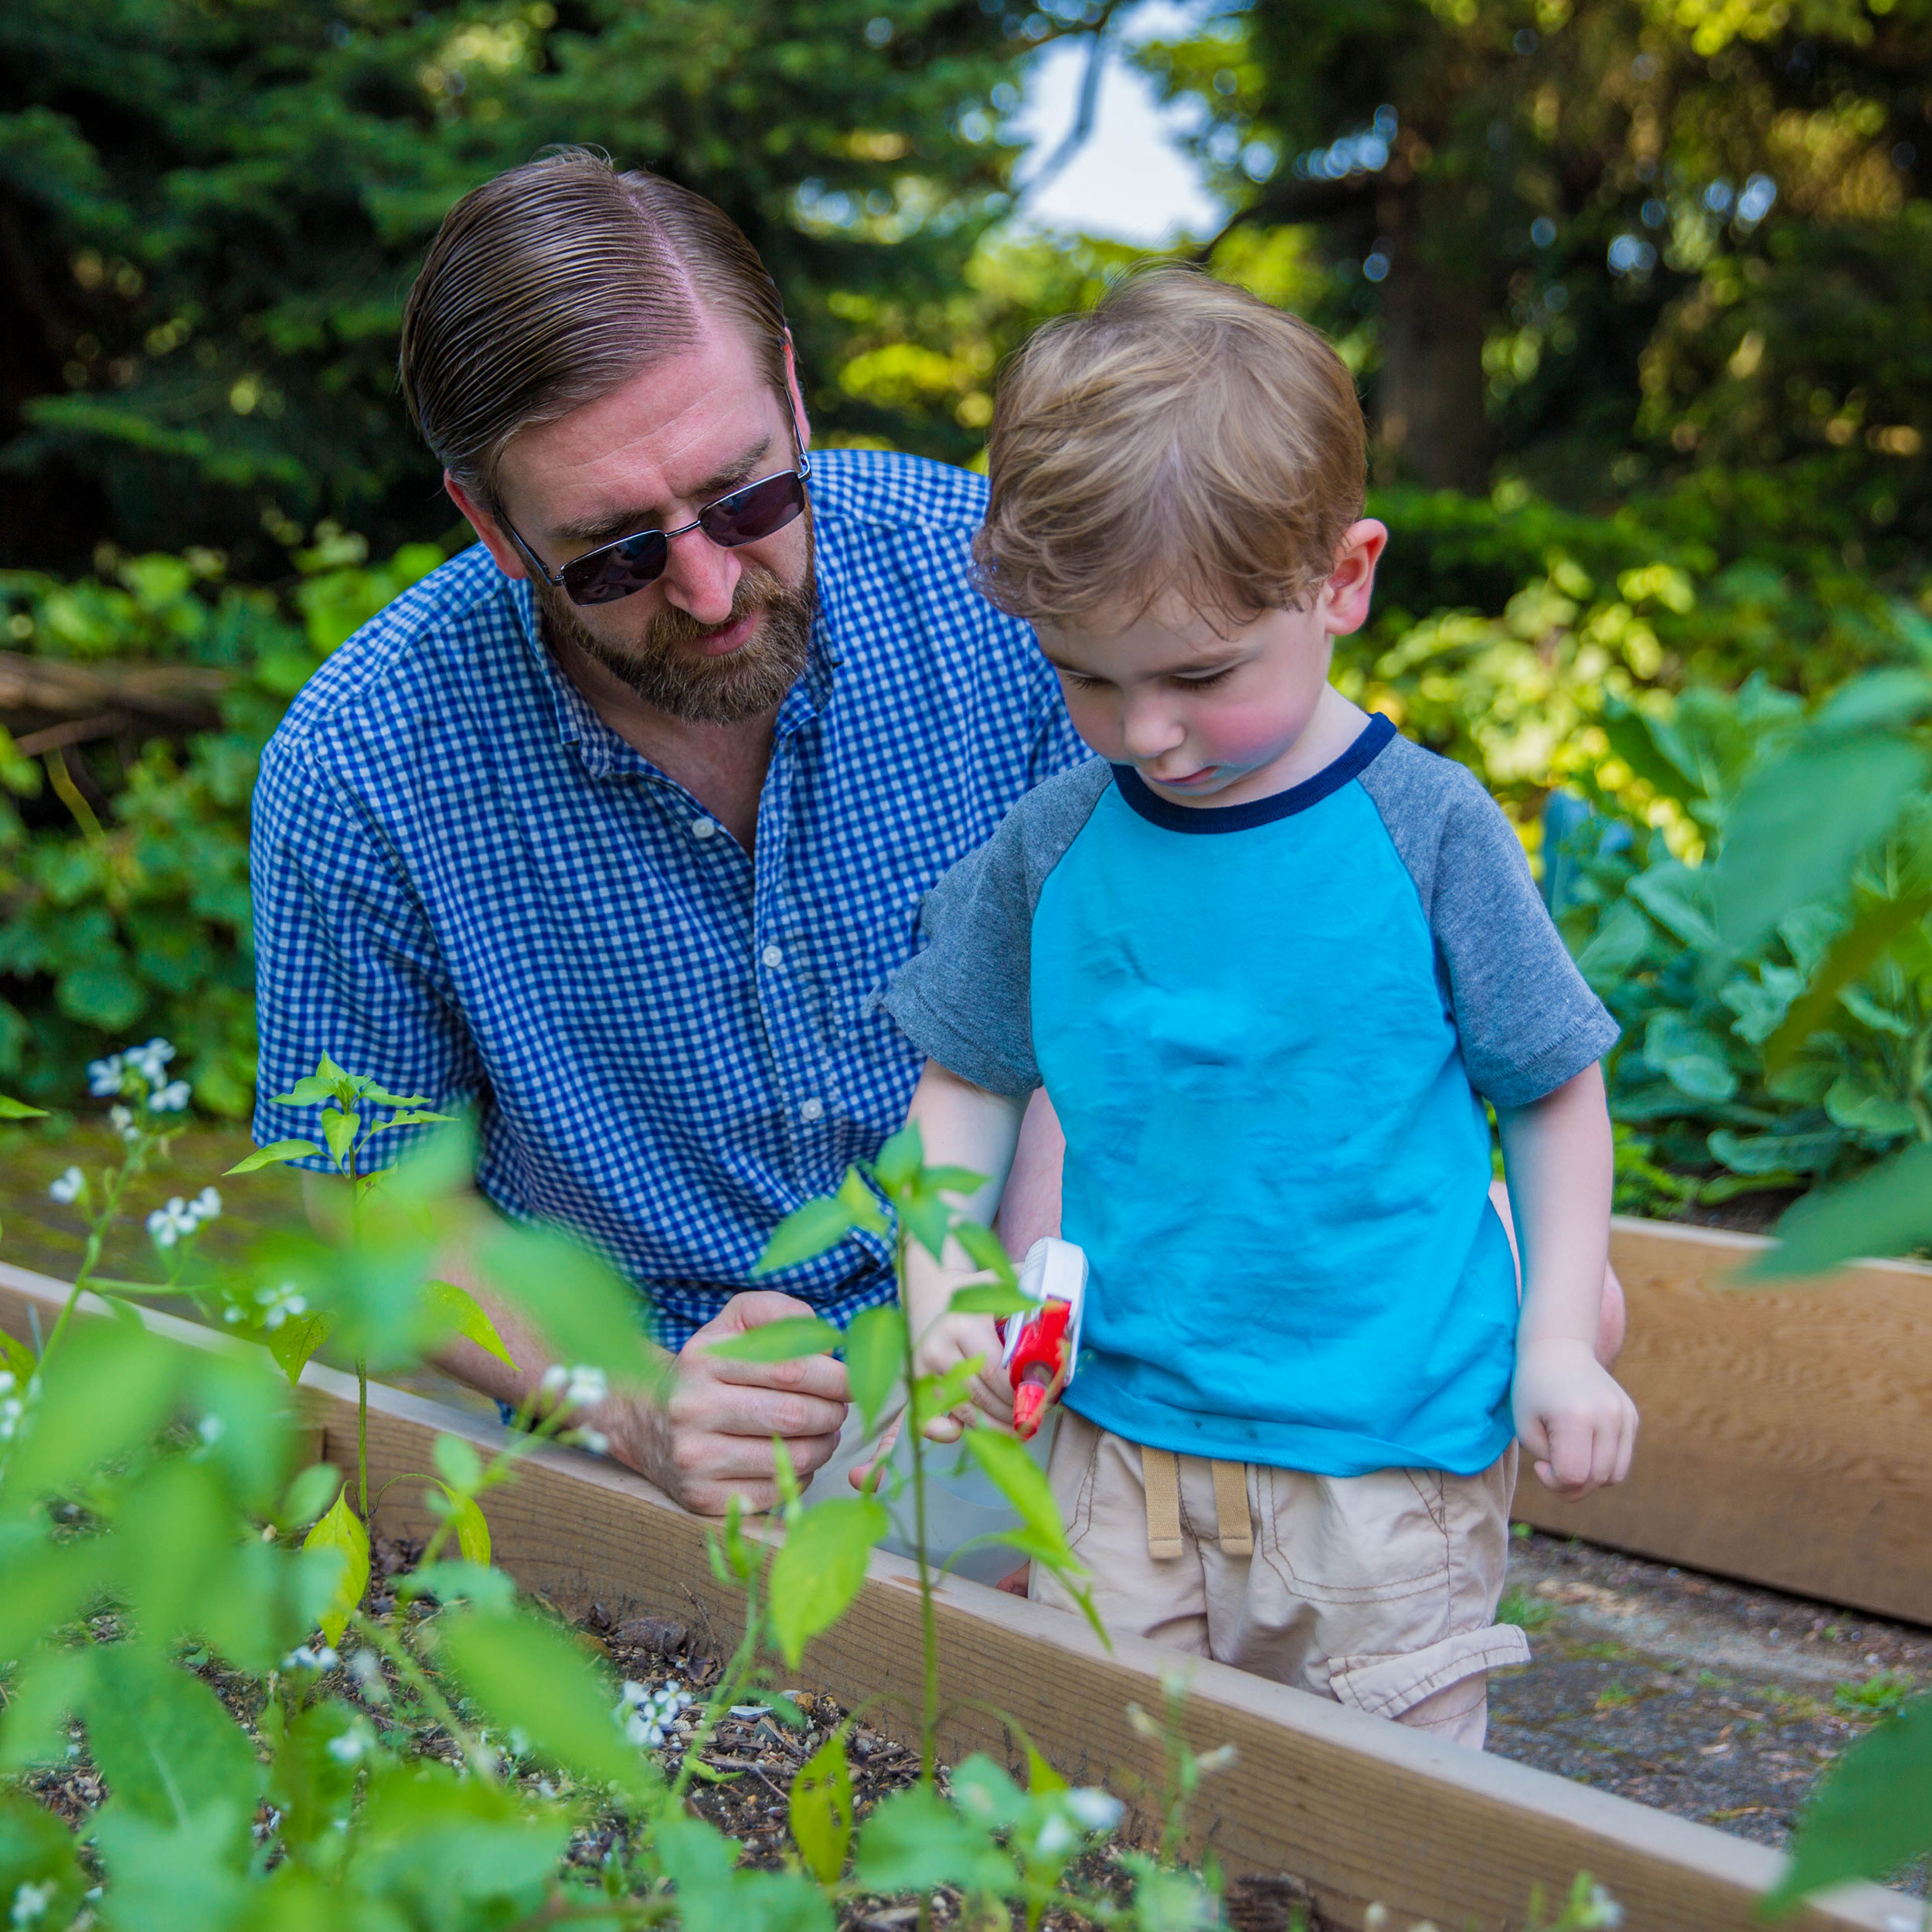 A child and his father spraying garden beds with water